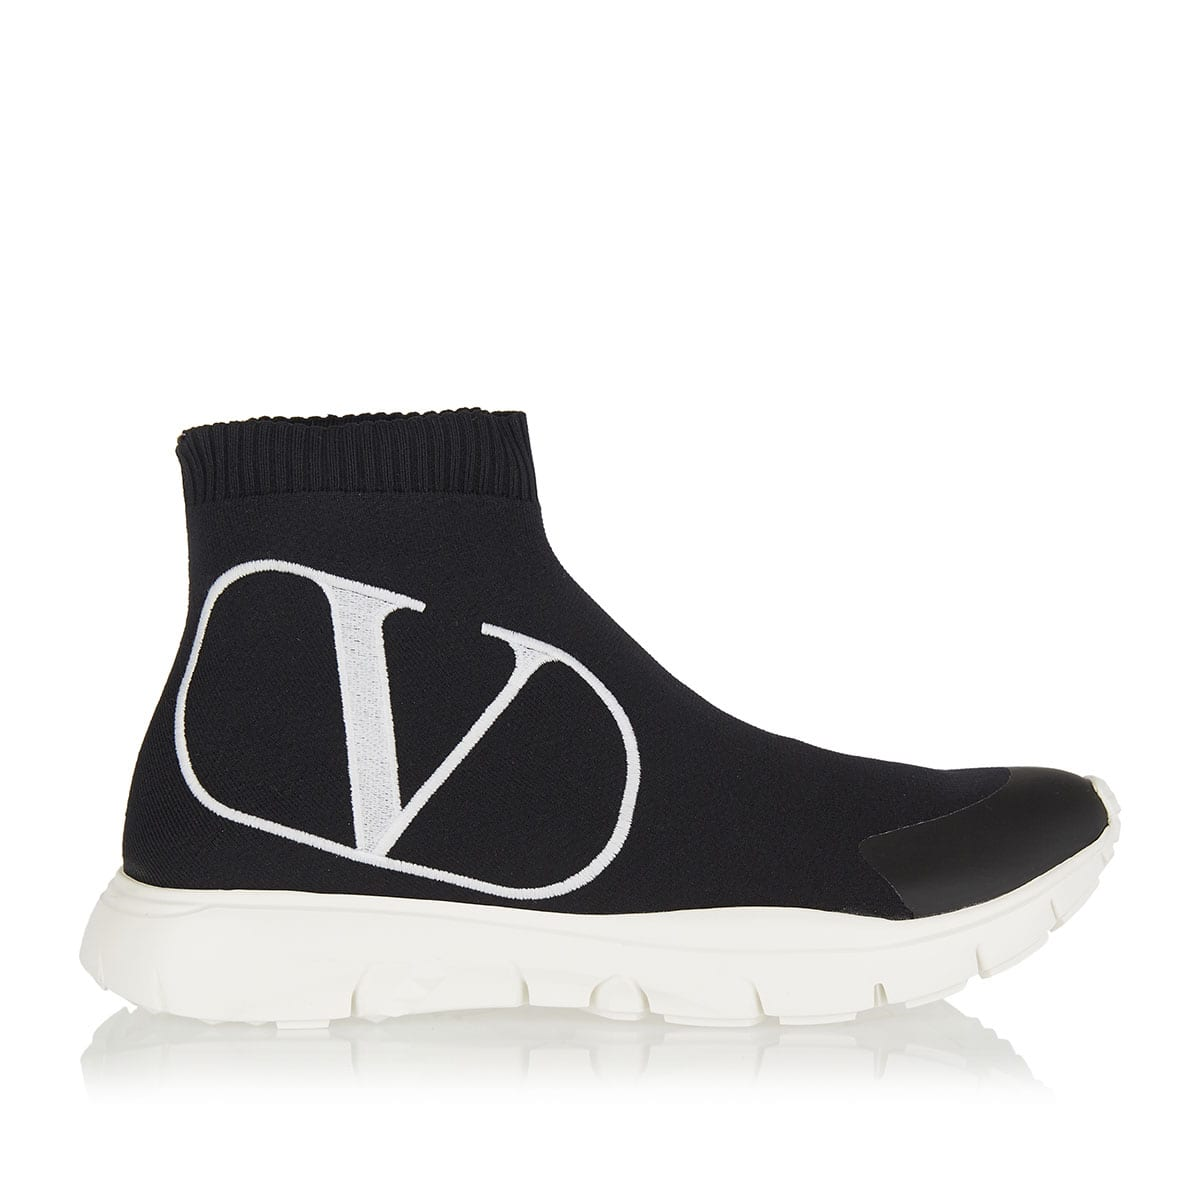 Vlogo high-top sock sneakers